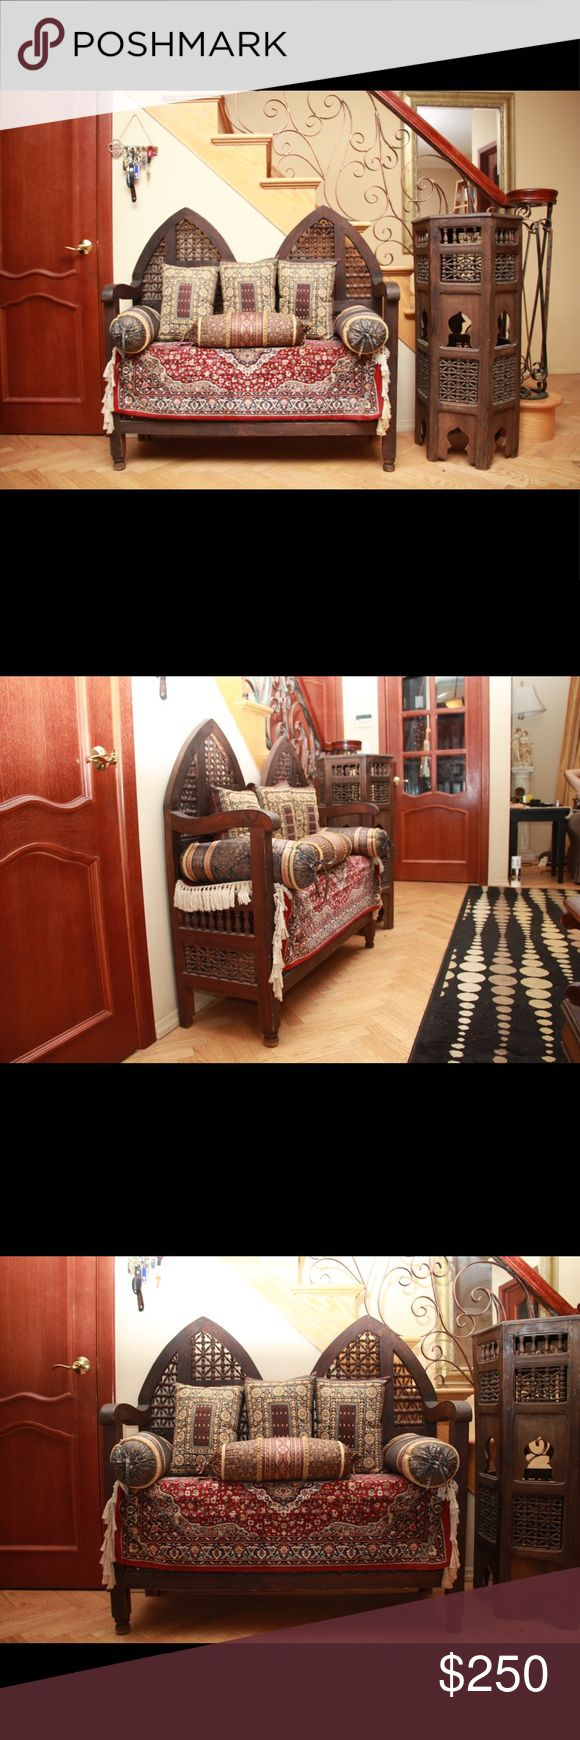 Ethnic Moroccan hallway interior decor furniture Molded wooden hallway bench furniture decor of Moroccan style with a weight limit up to 170 Pounds,  along with a 4 foot tall wooden stand Other